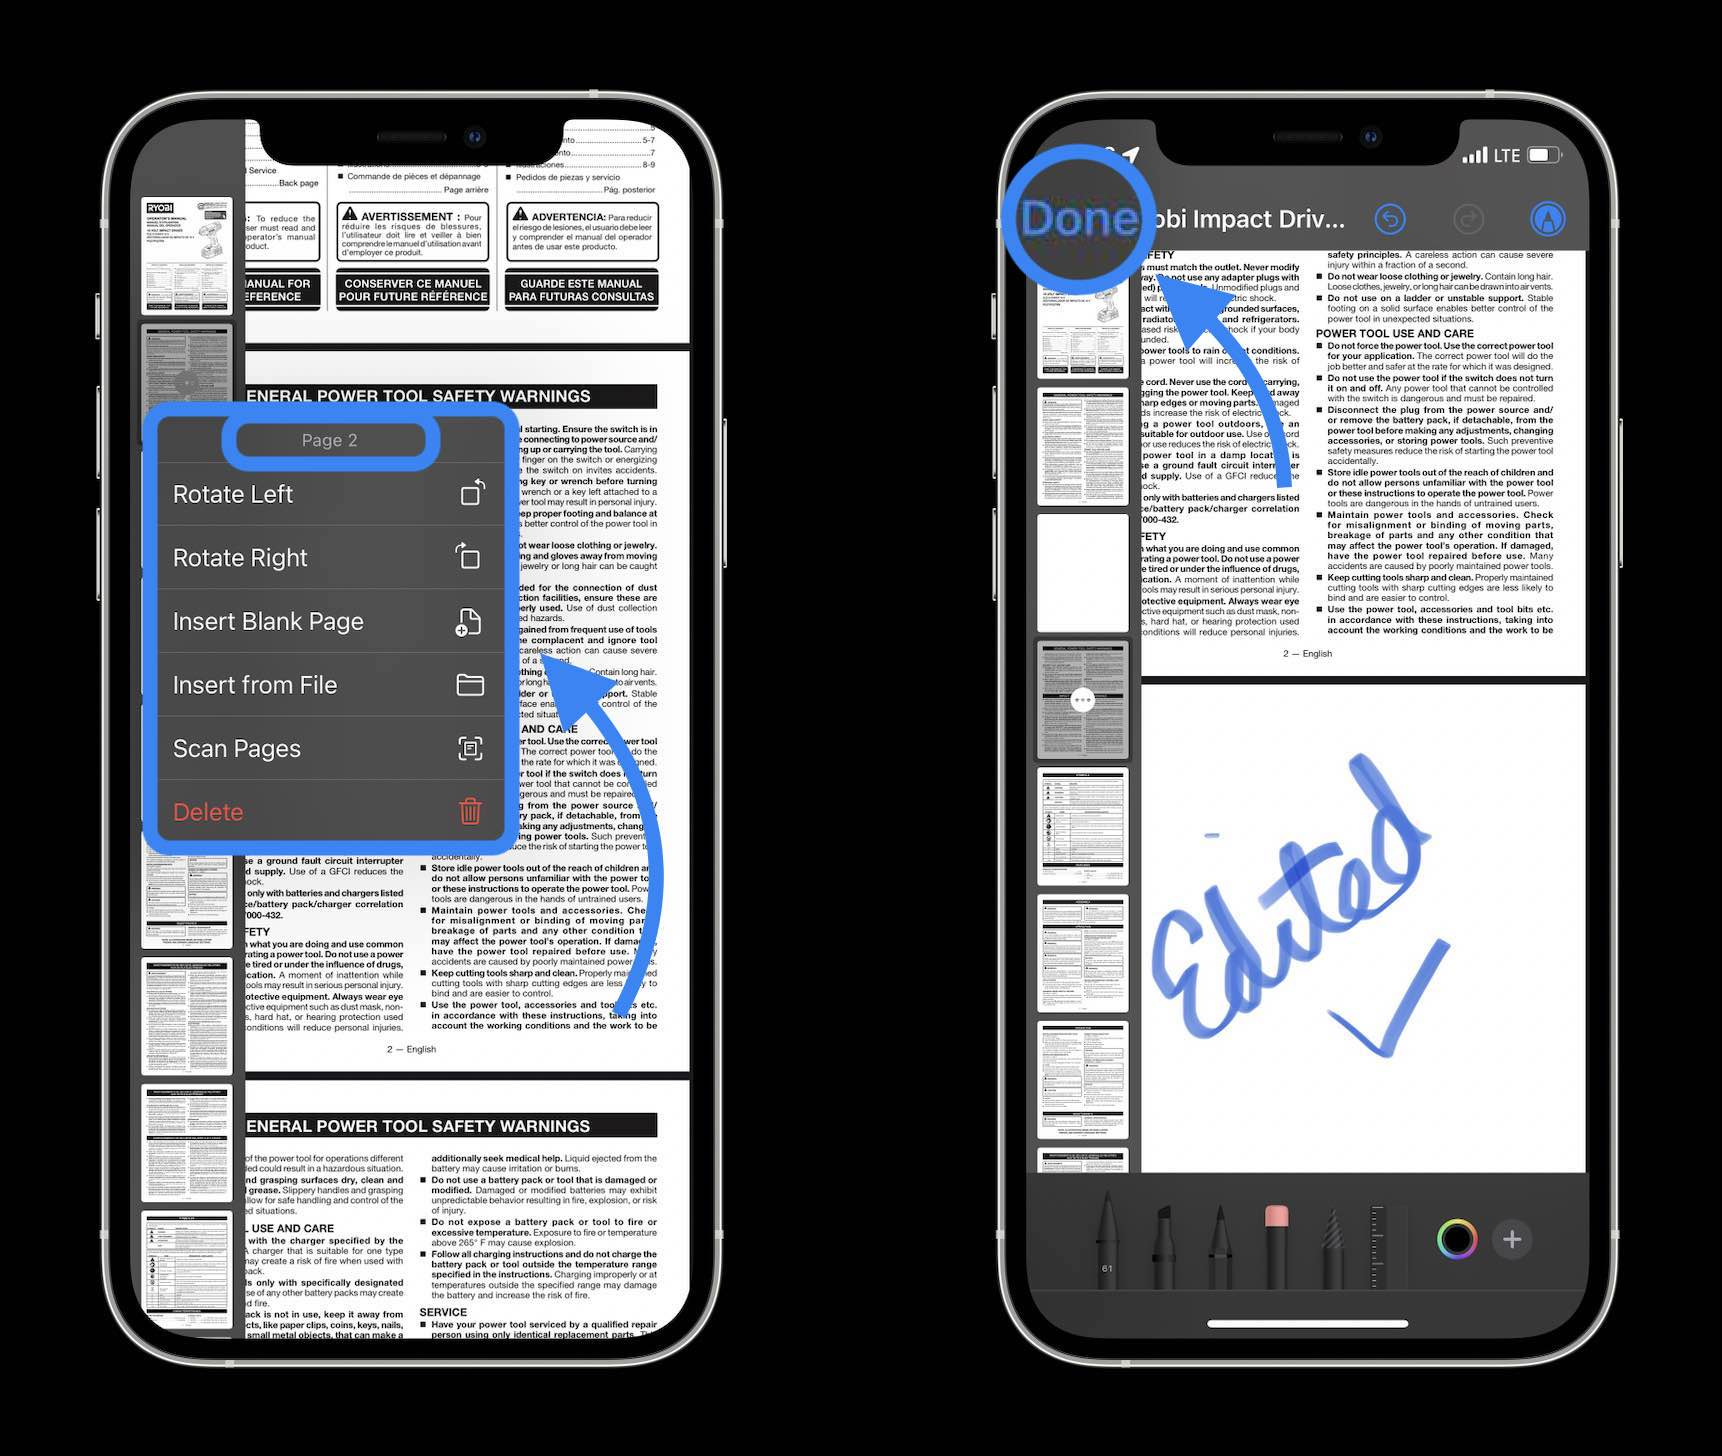 How to edit PDFs on iPhone and iPad in iOS 15 - walkthrough 2